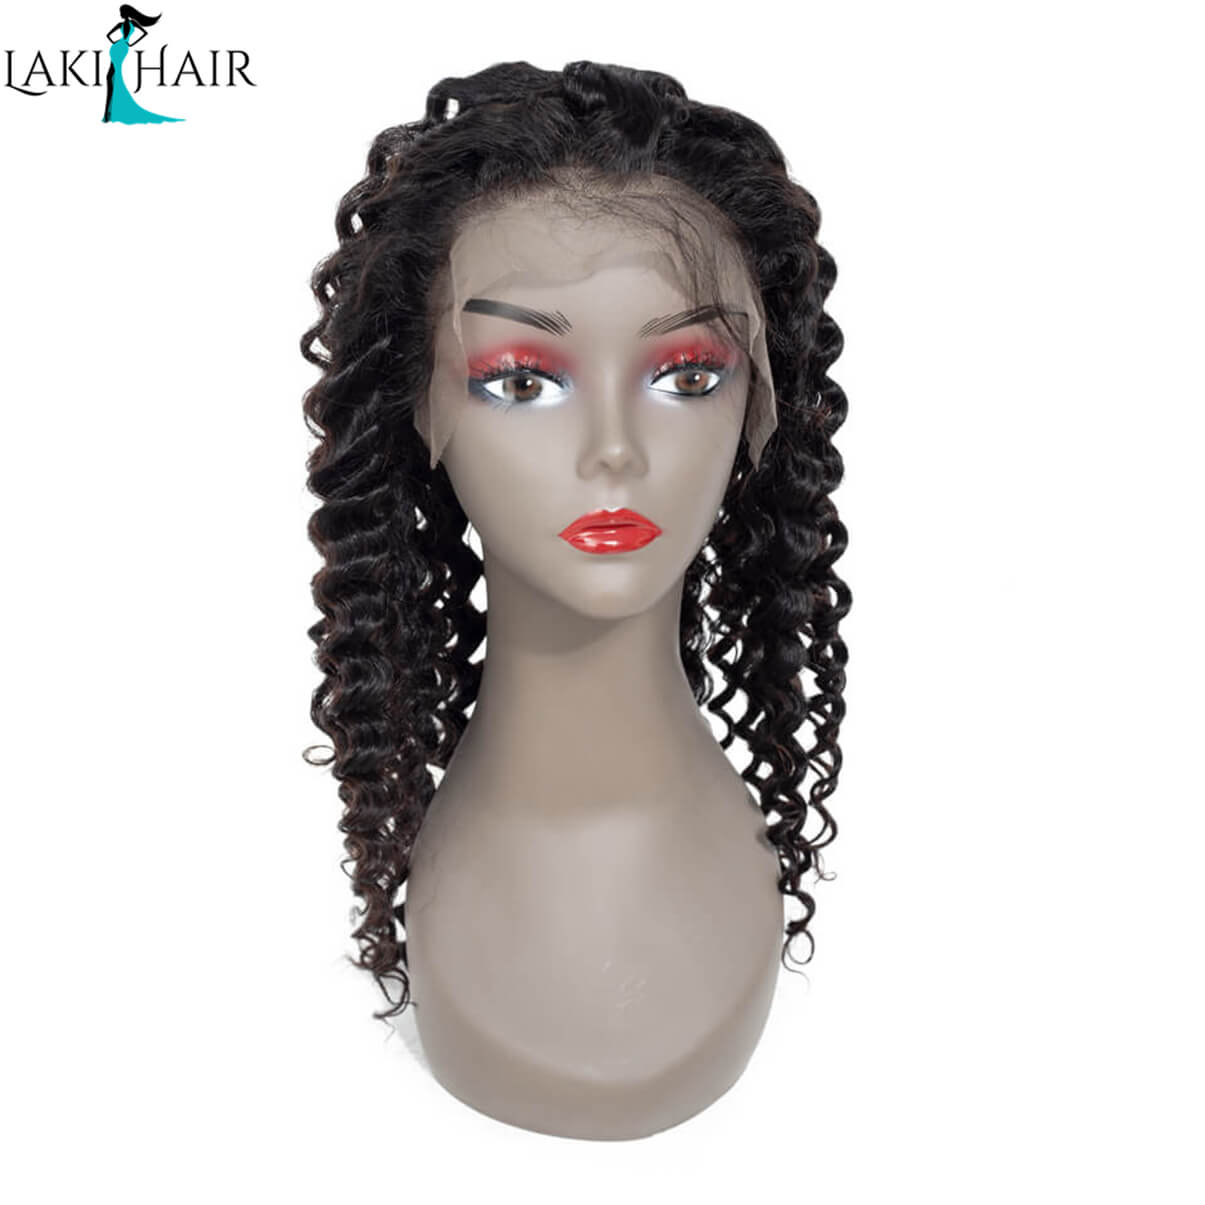 Lakihair Lace Front Wigs Deep Wave 180% Full Density 100% Virgin Human Hair Wigs With Baby Hair